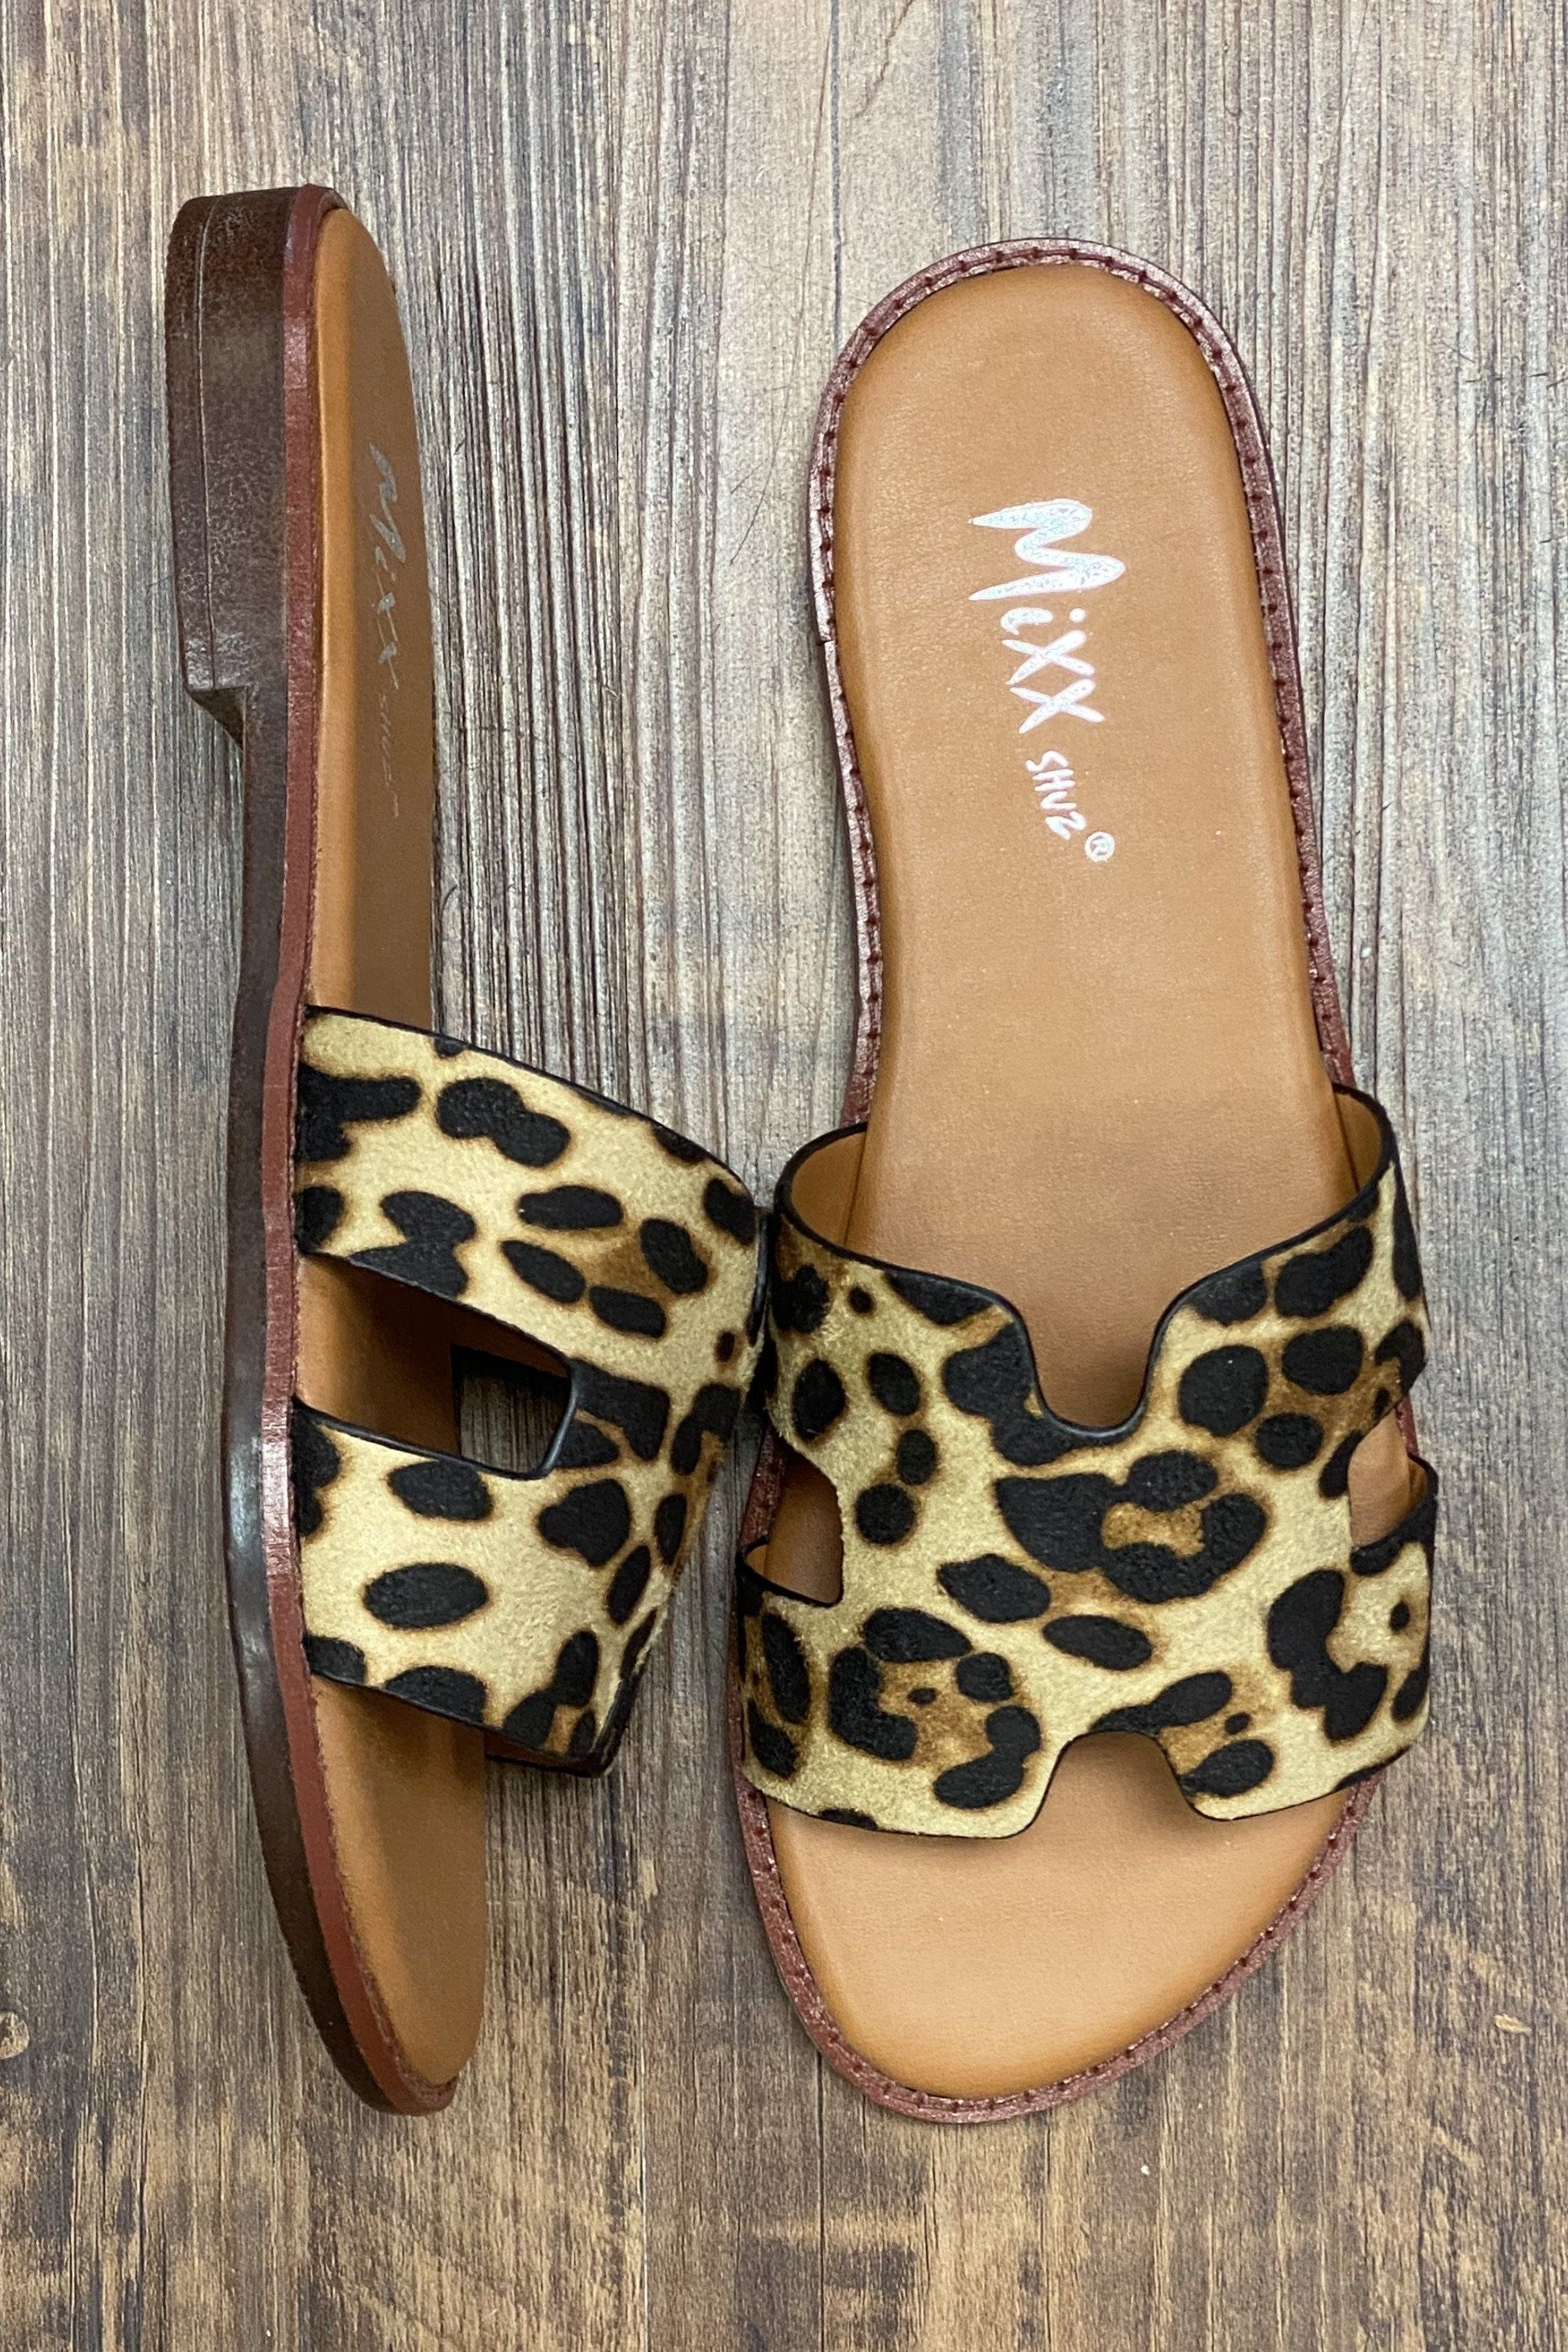 Leopard Slide SHOES K.Lane's Boutique